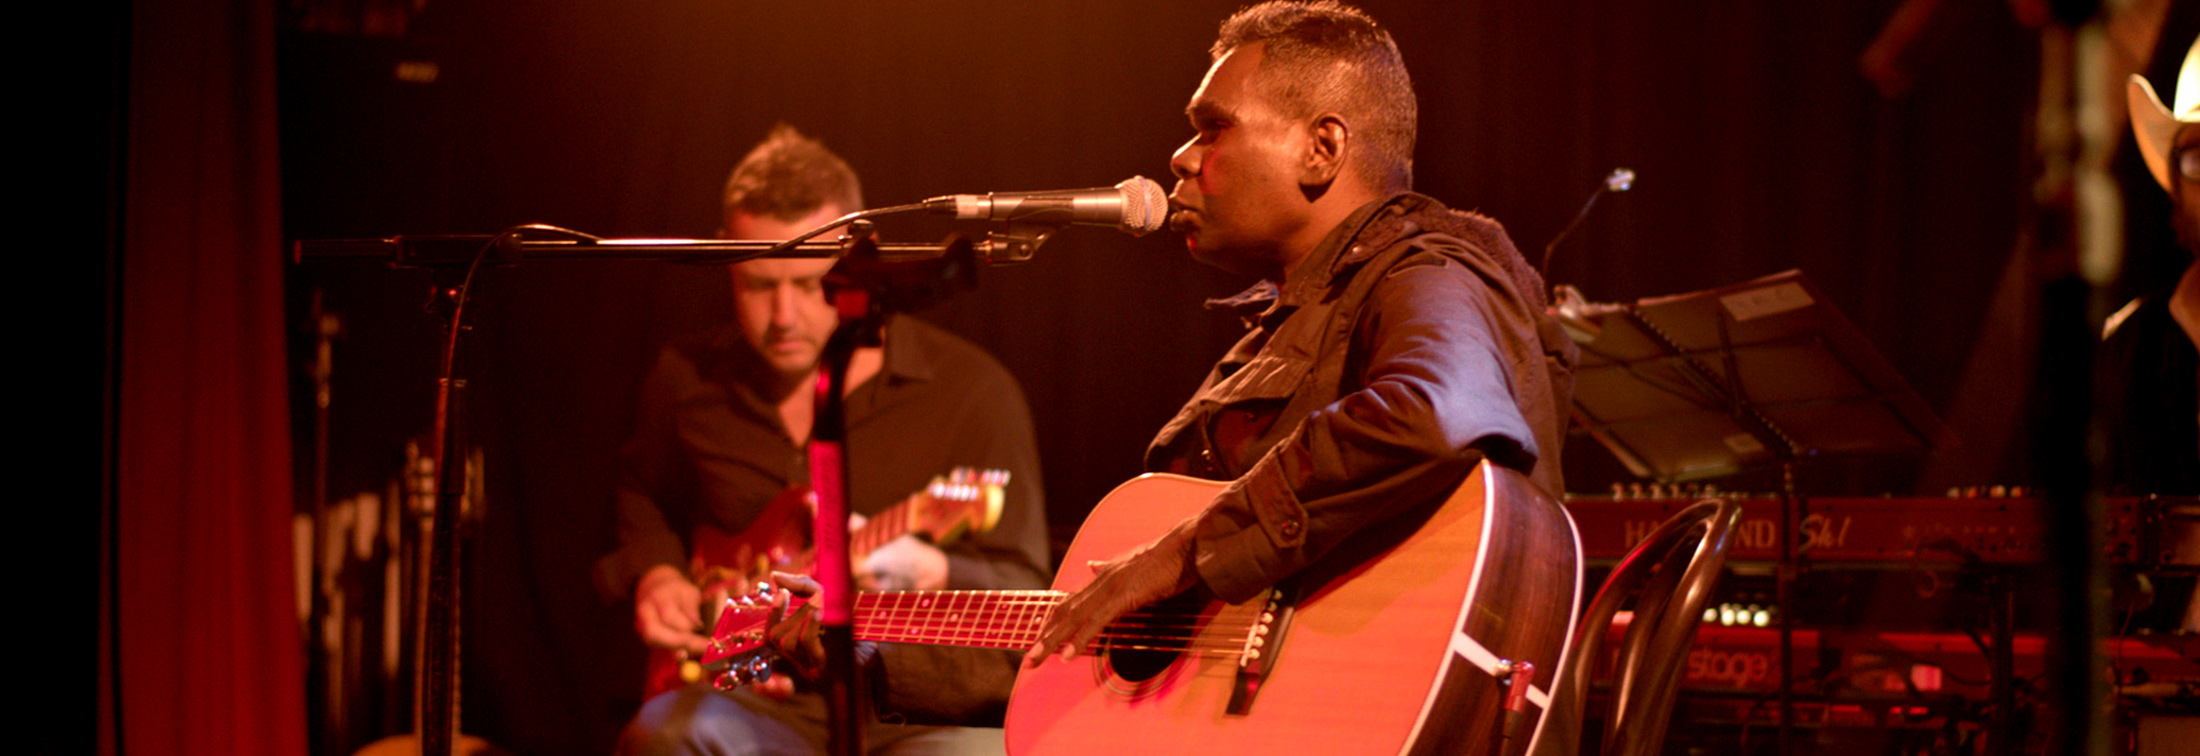 Gurrumul - A celebration of music, culture and friendship